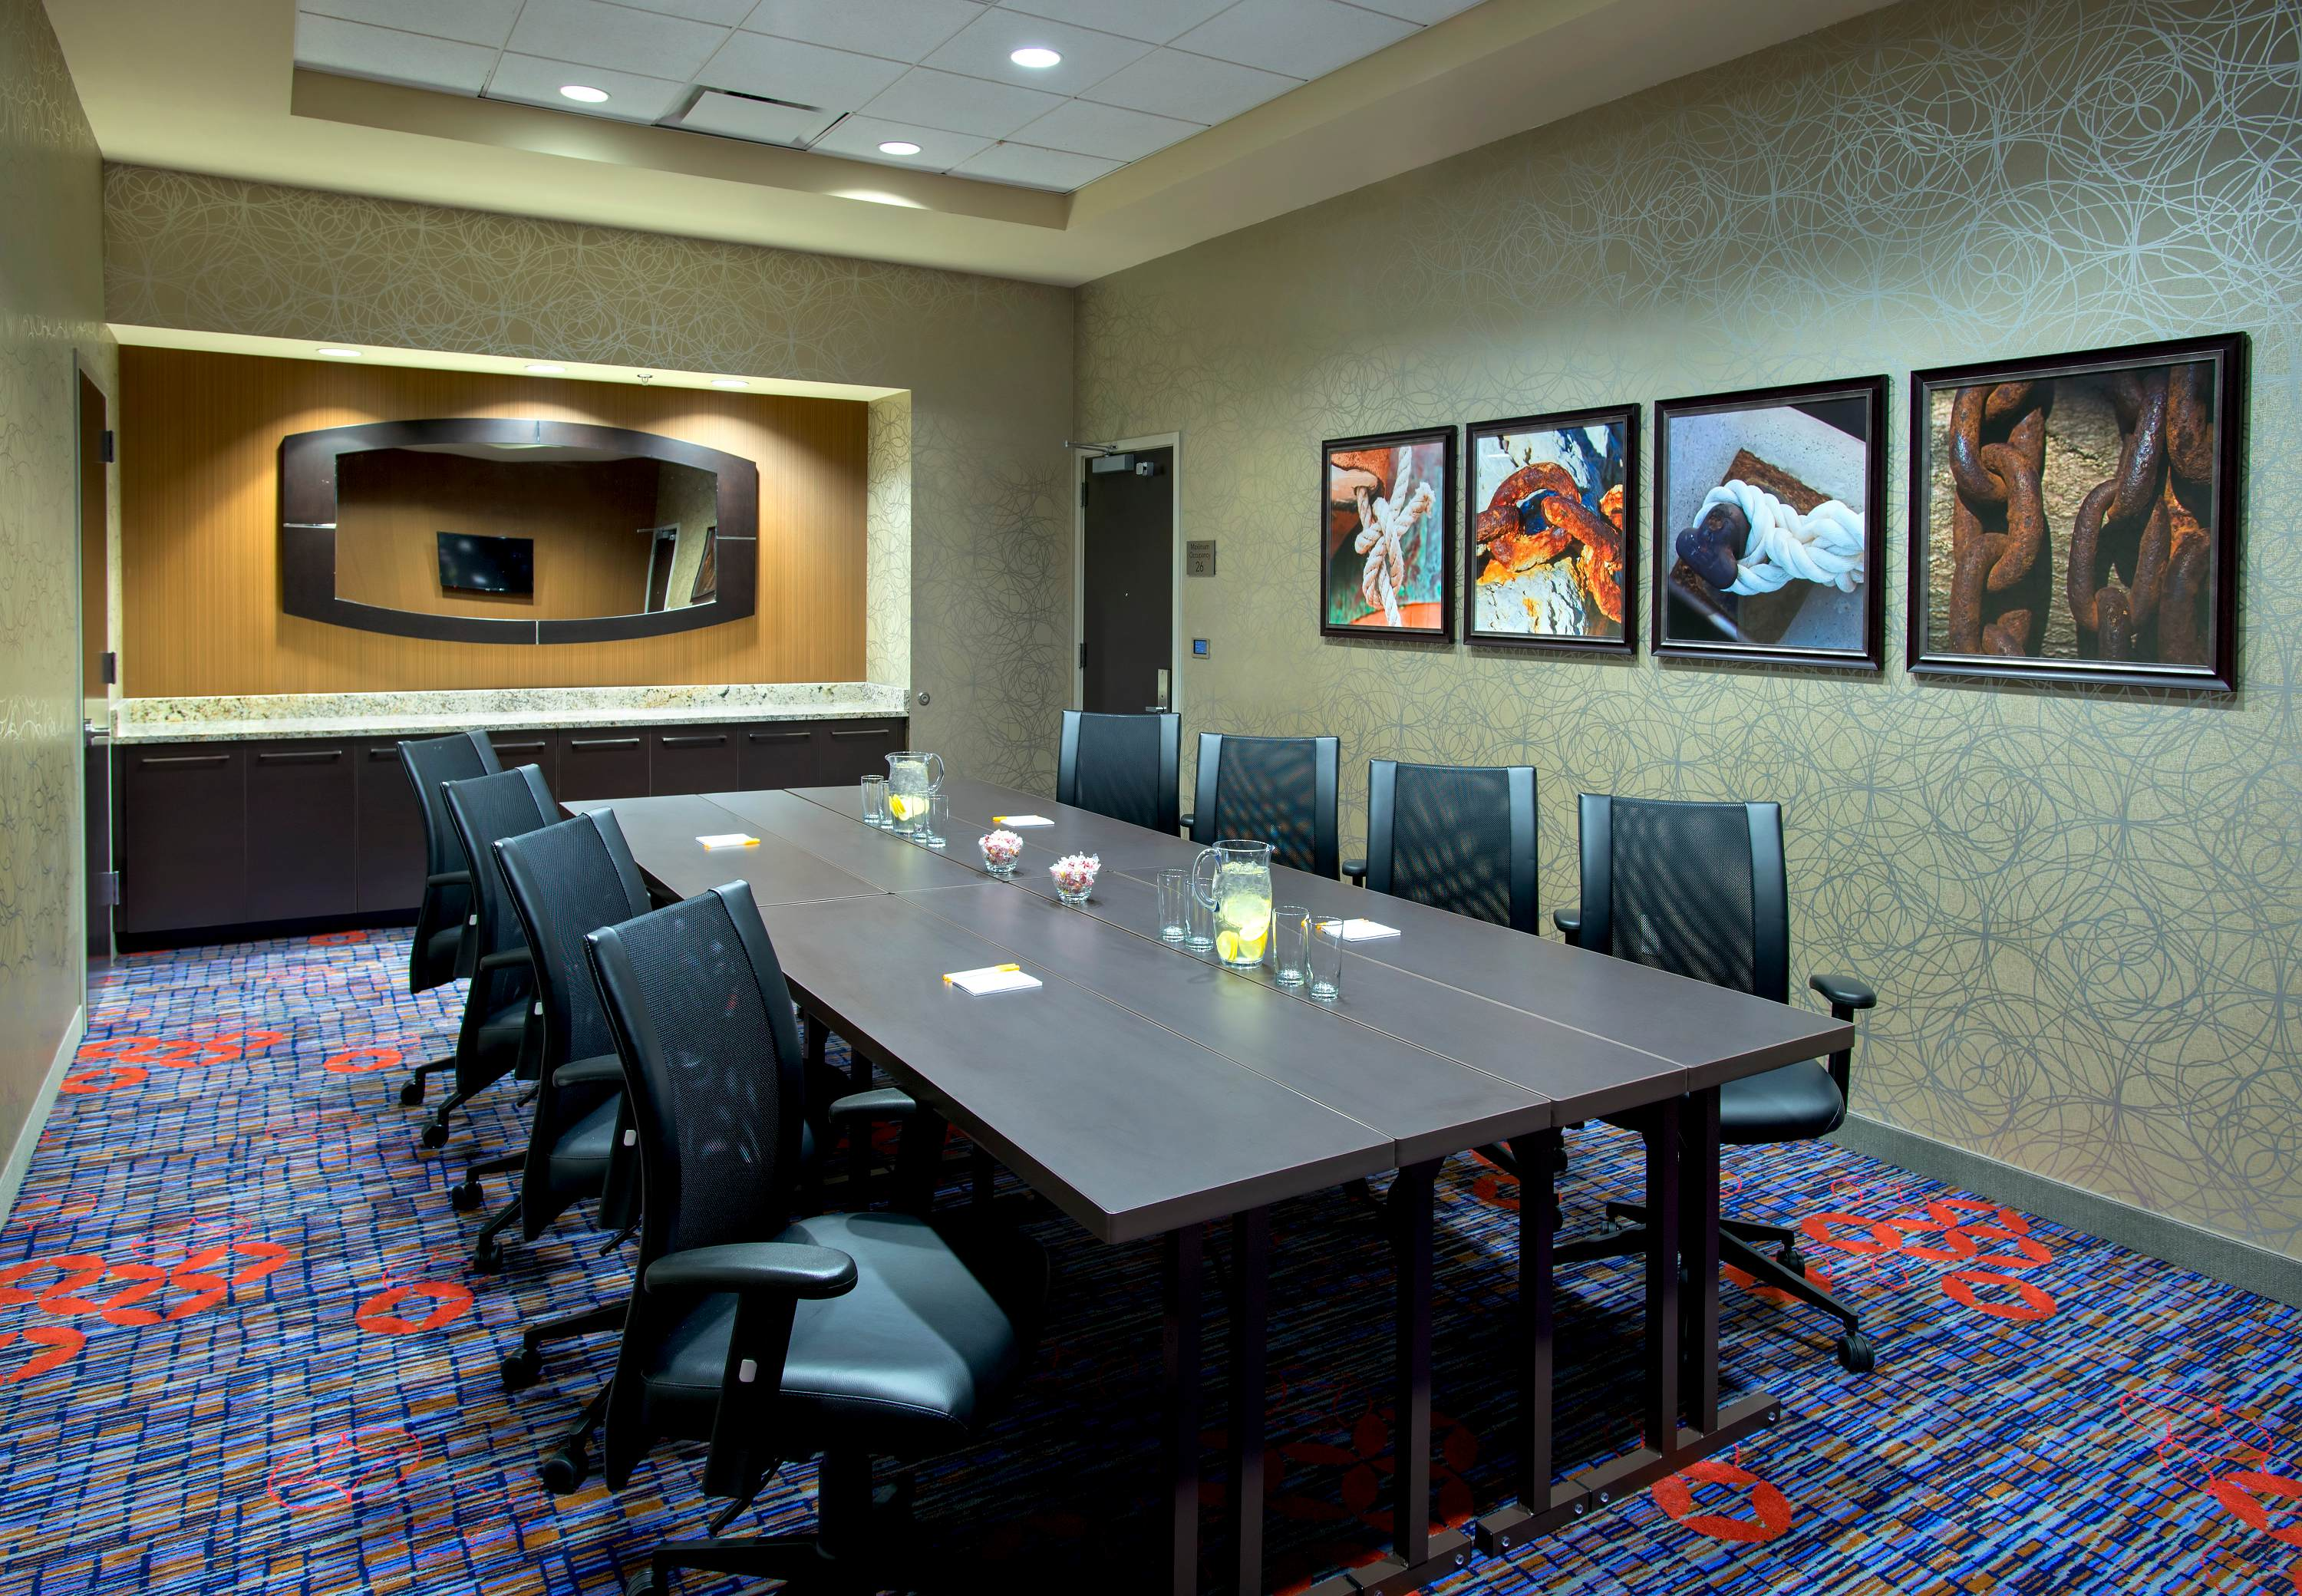 Courtyard by Marriott Philadelphia South at The Navy Yard image 16